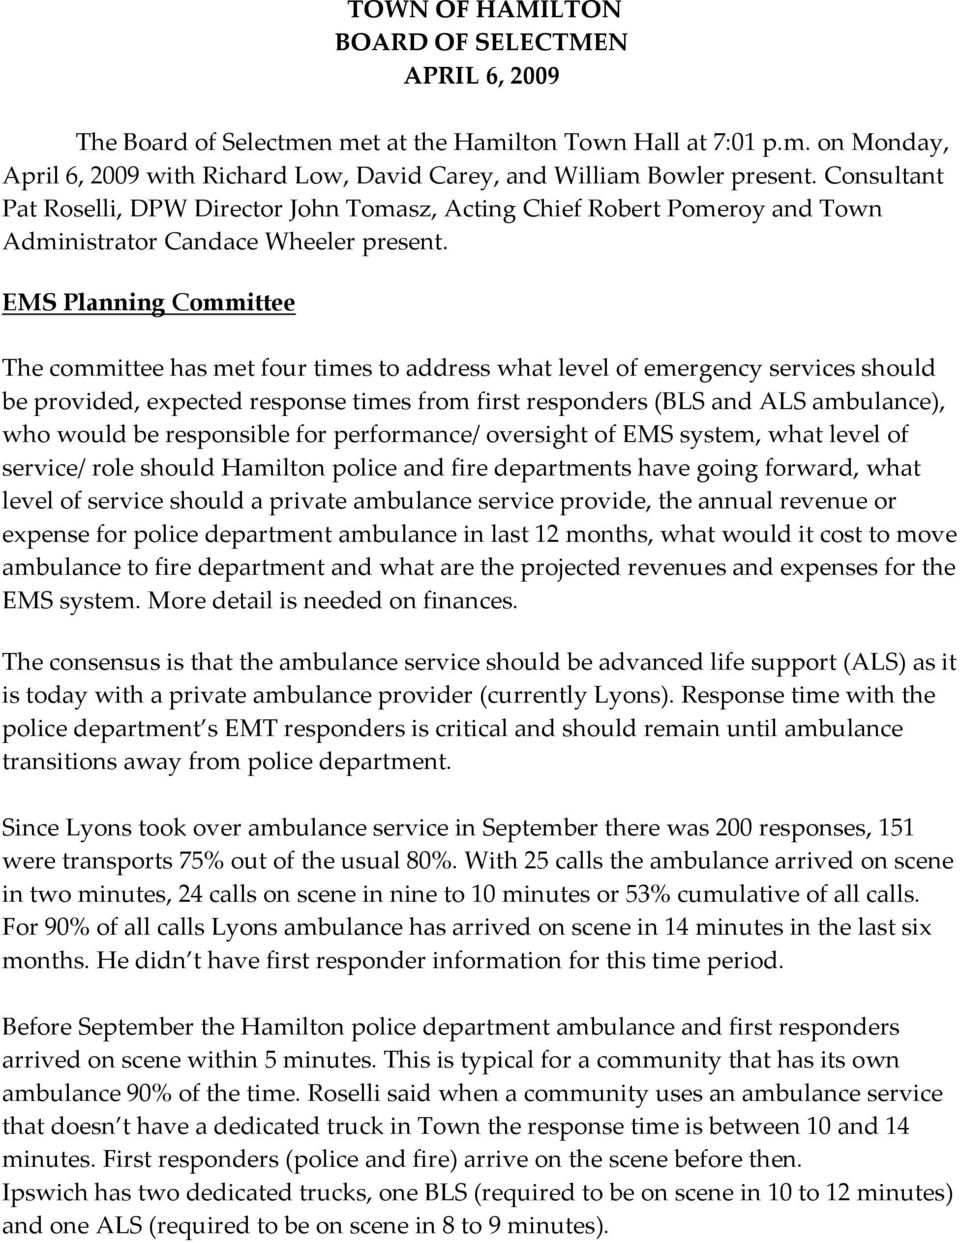 EMS Planning Committee The committee has met four times to address what level of emergency services should be provided, expected response times from first responders (BLS and ALS ambulance), who